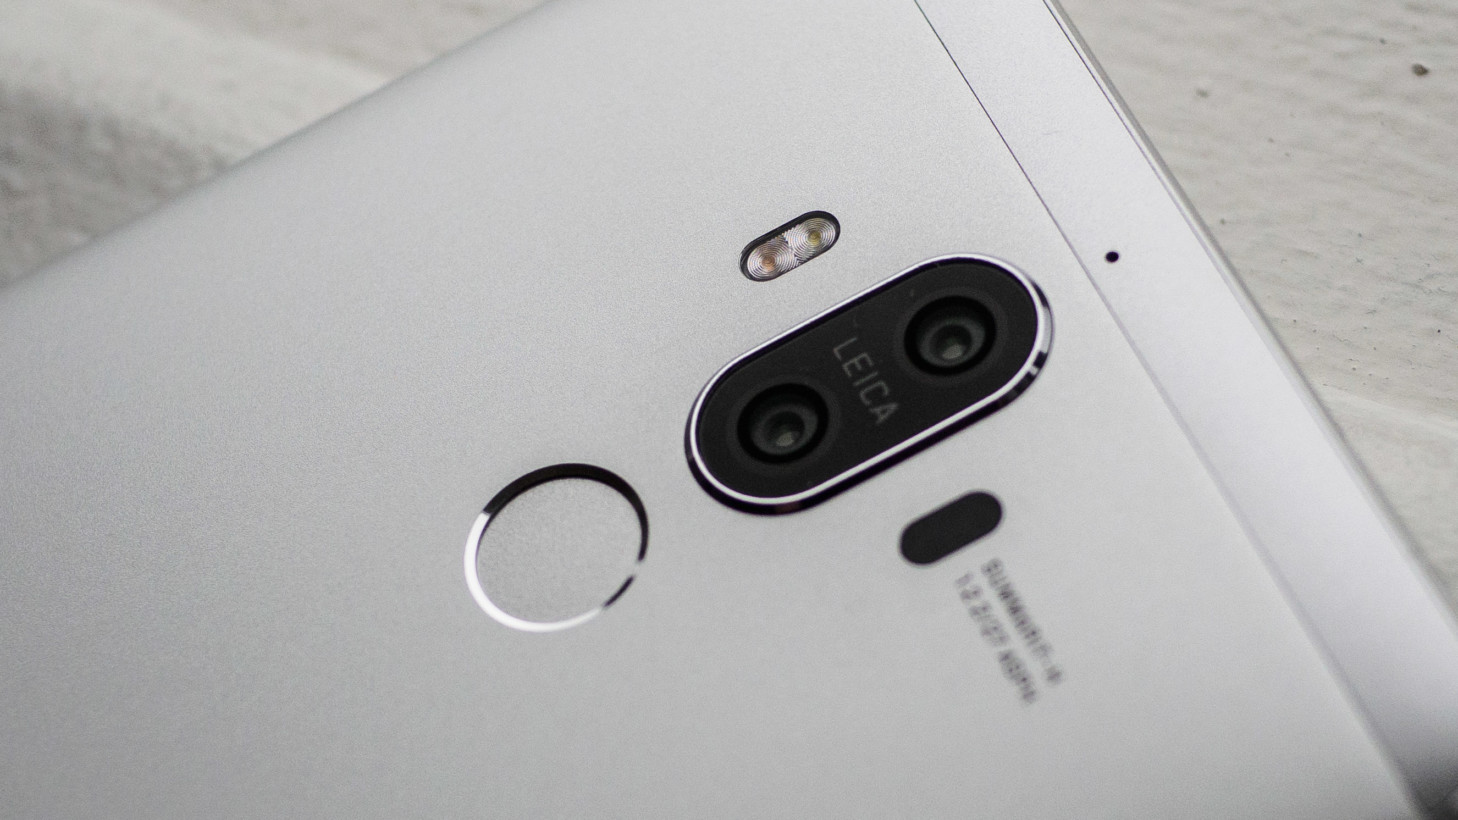 https://cdn2.tnwcdn.com/wp-content/blogs.dir/1/files/2016/11/Huawei-Mate-9-5.jpg